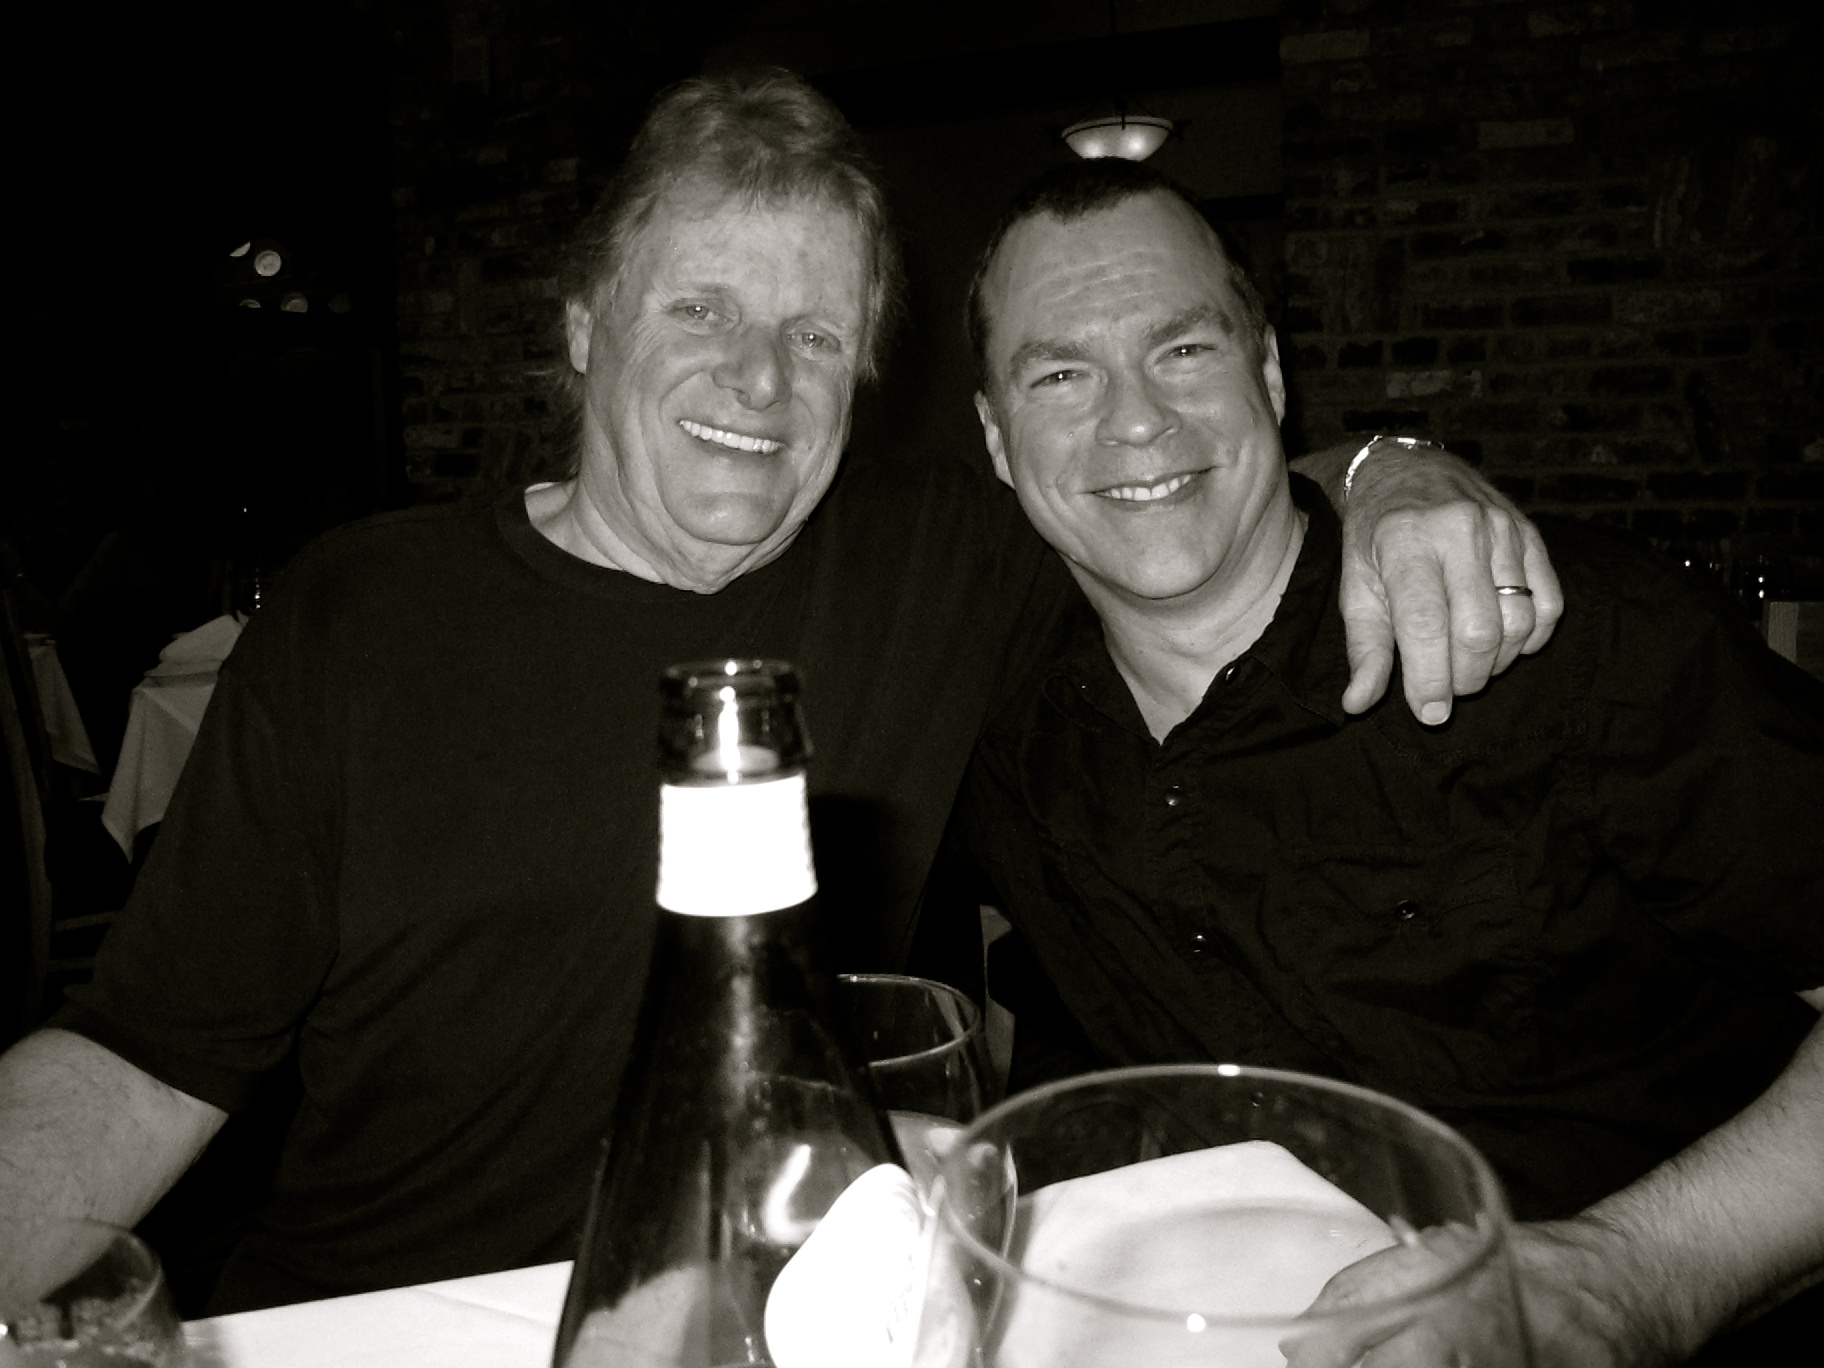 John with friend/hero Reggie Young